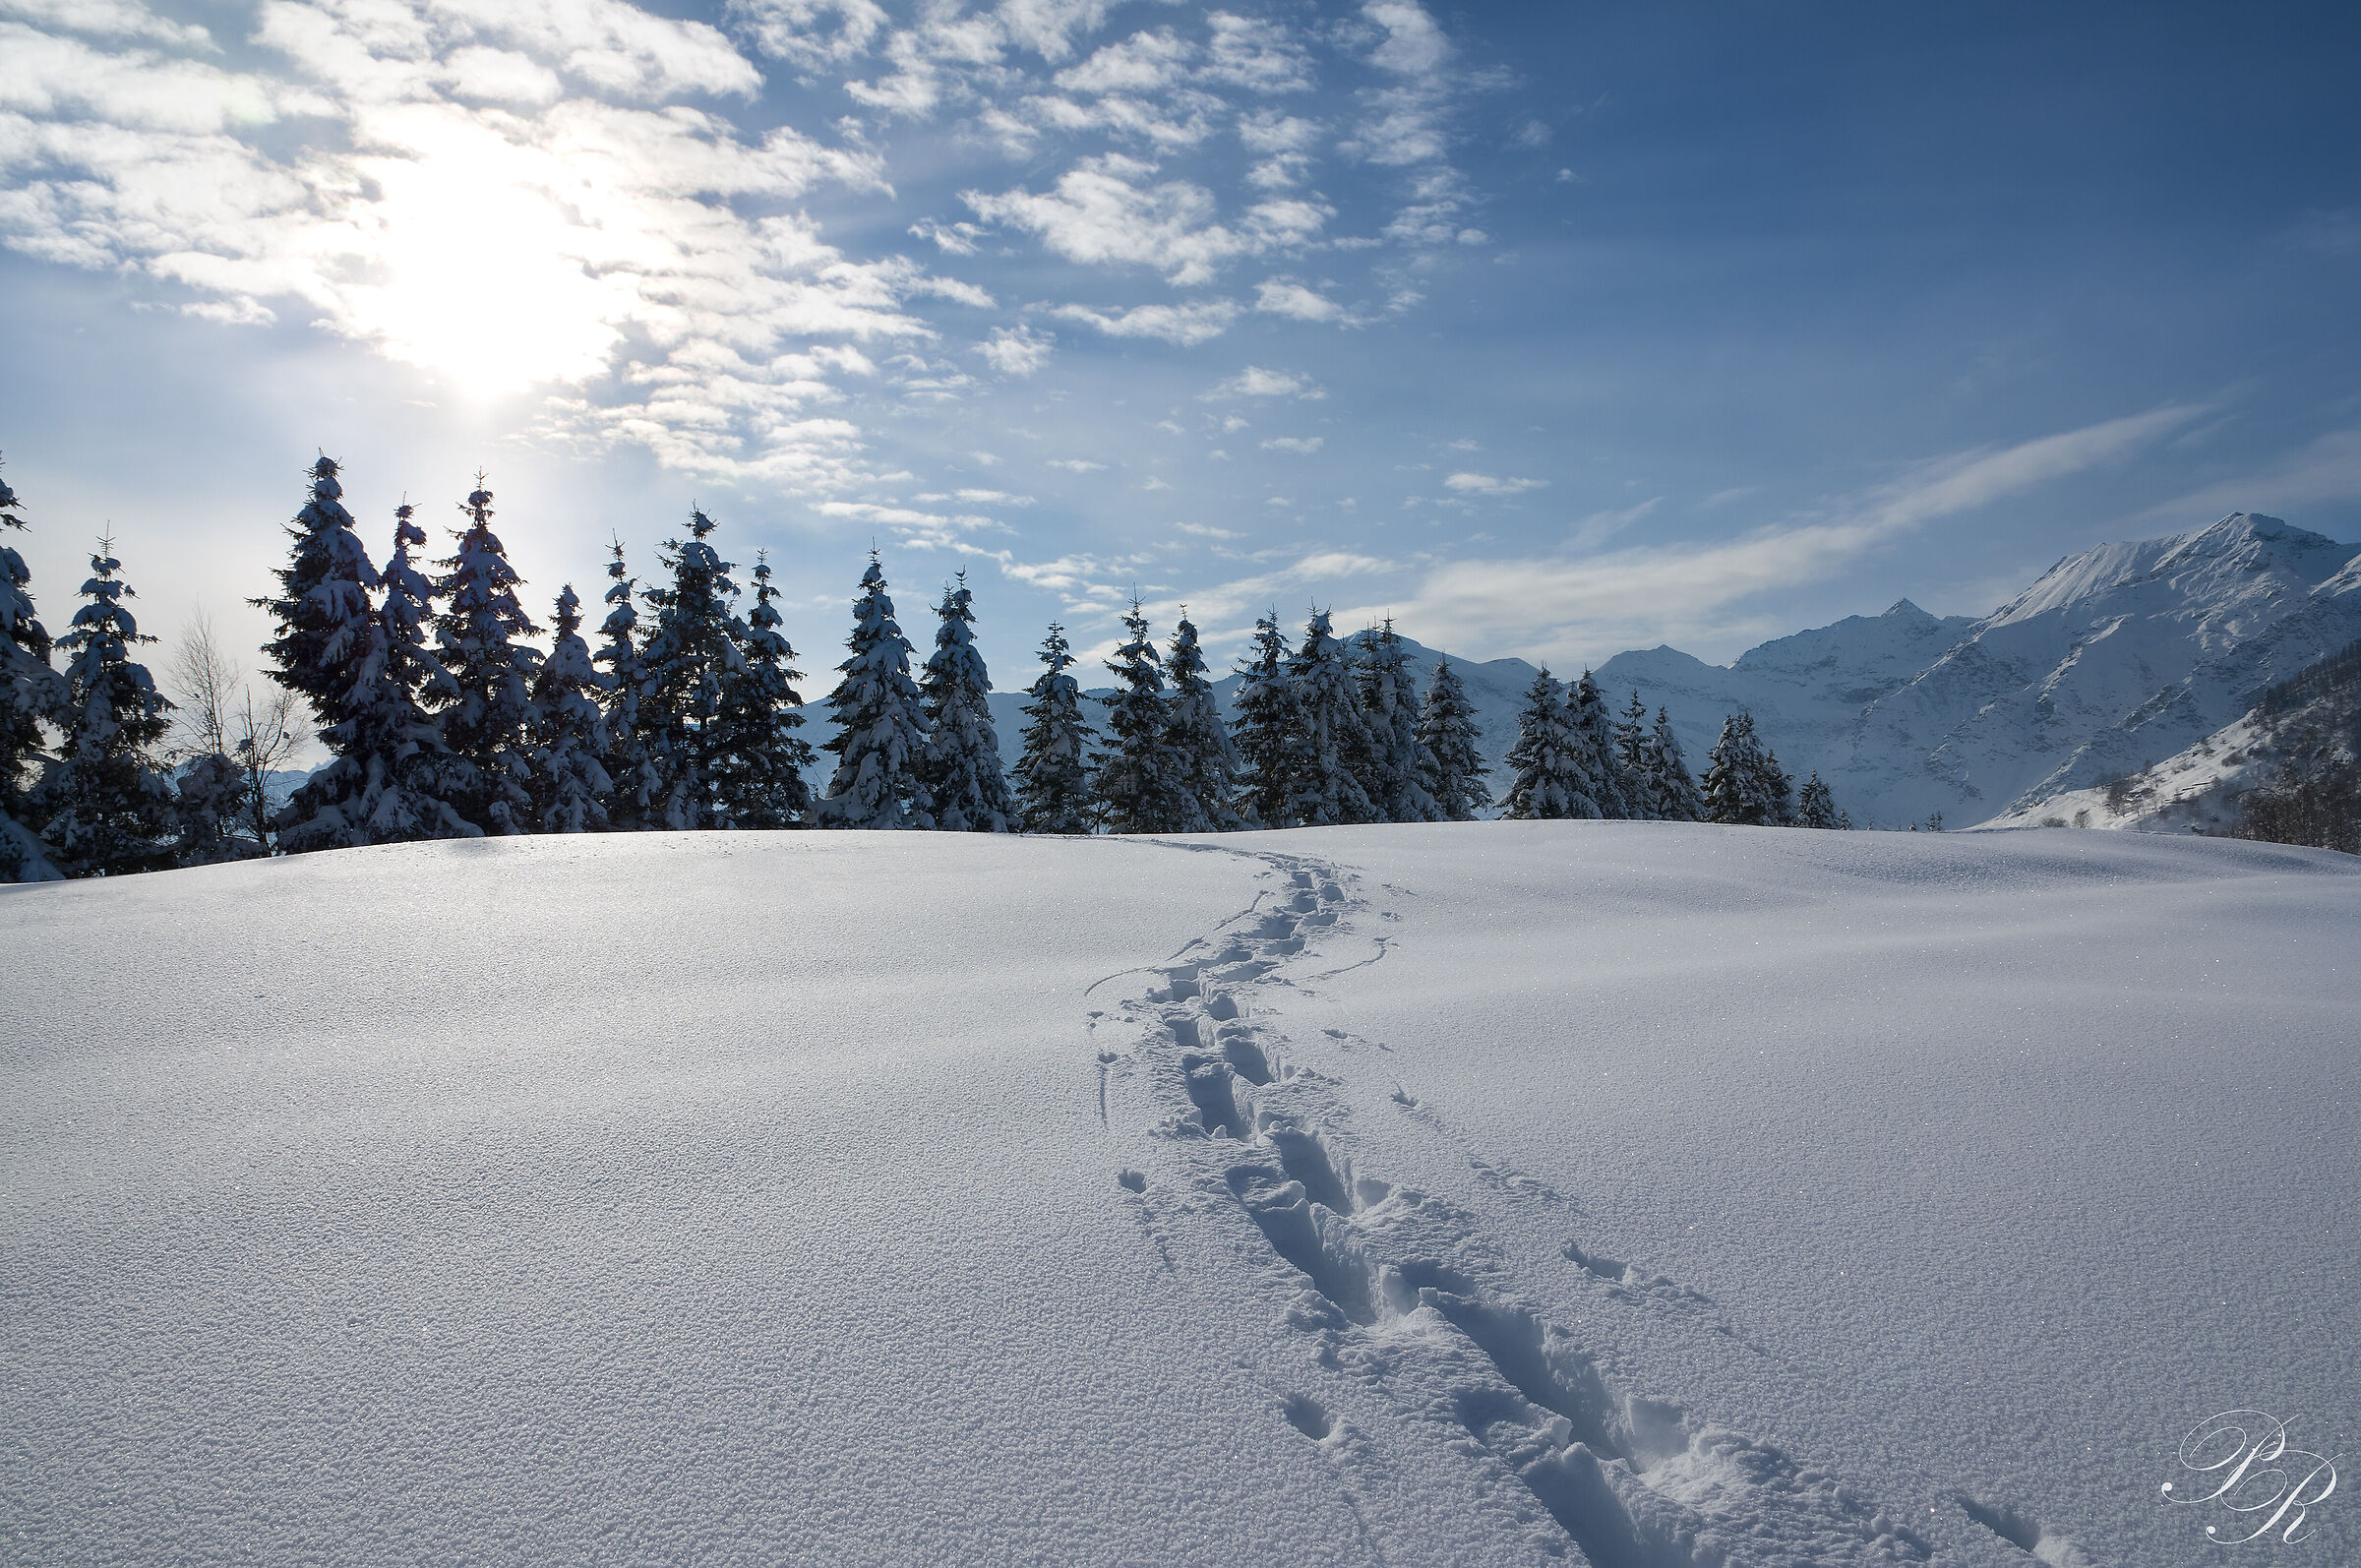 And I turned to look at my footsteps...